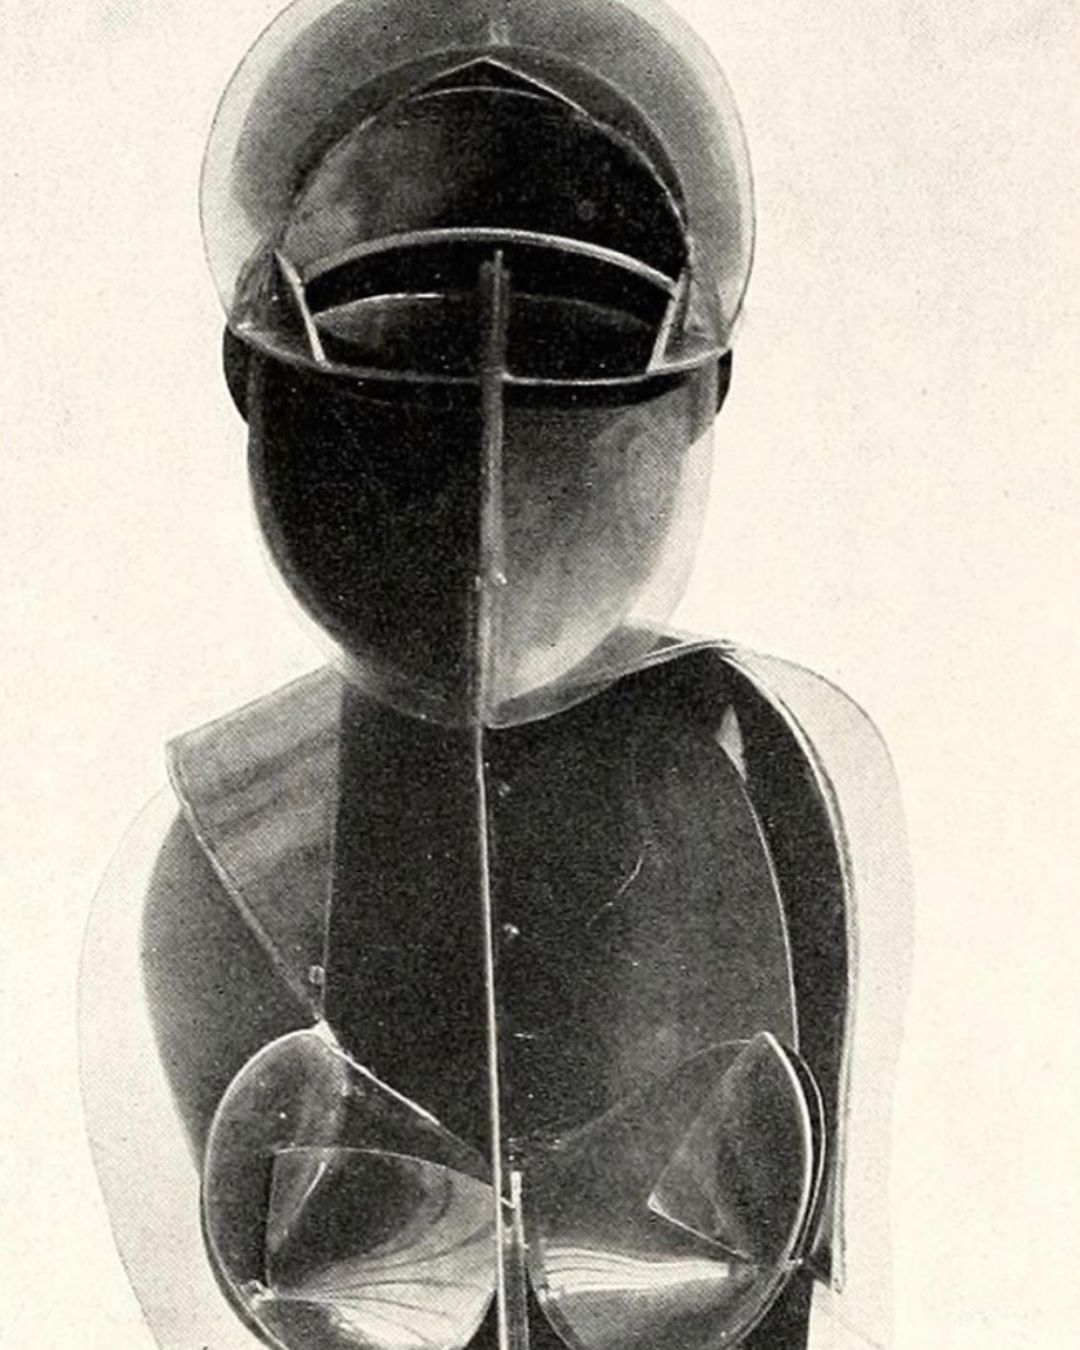 Thinking about my armor and how I might make it a little less rigid and a little more porous. Antoine Pevsner 1935 via @panandthedream